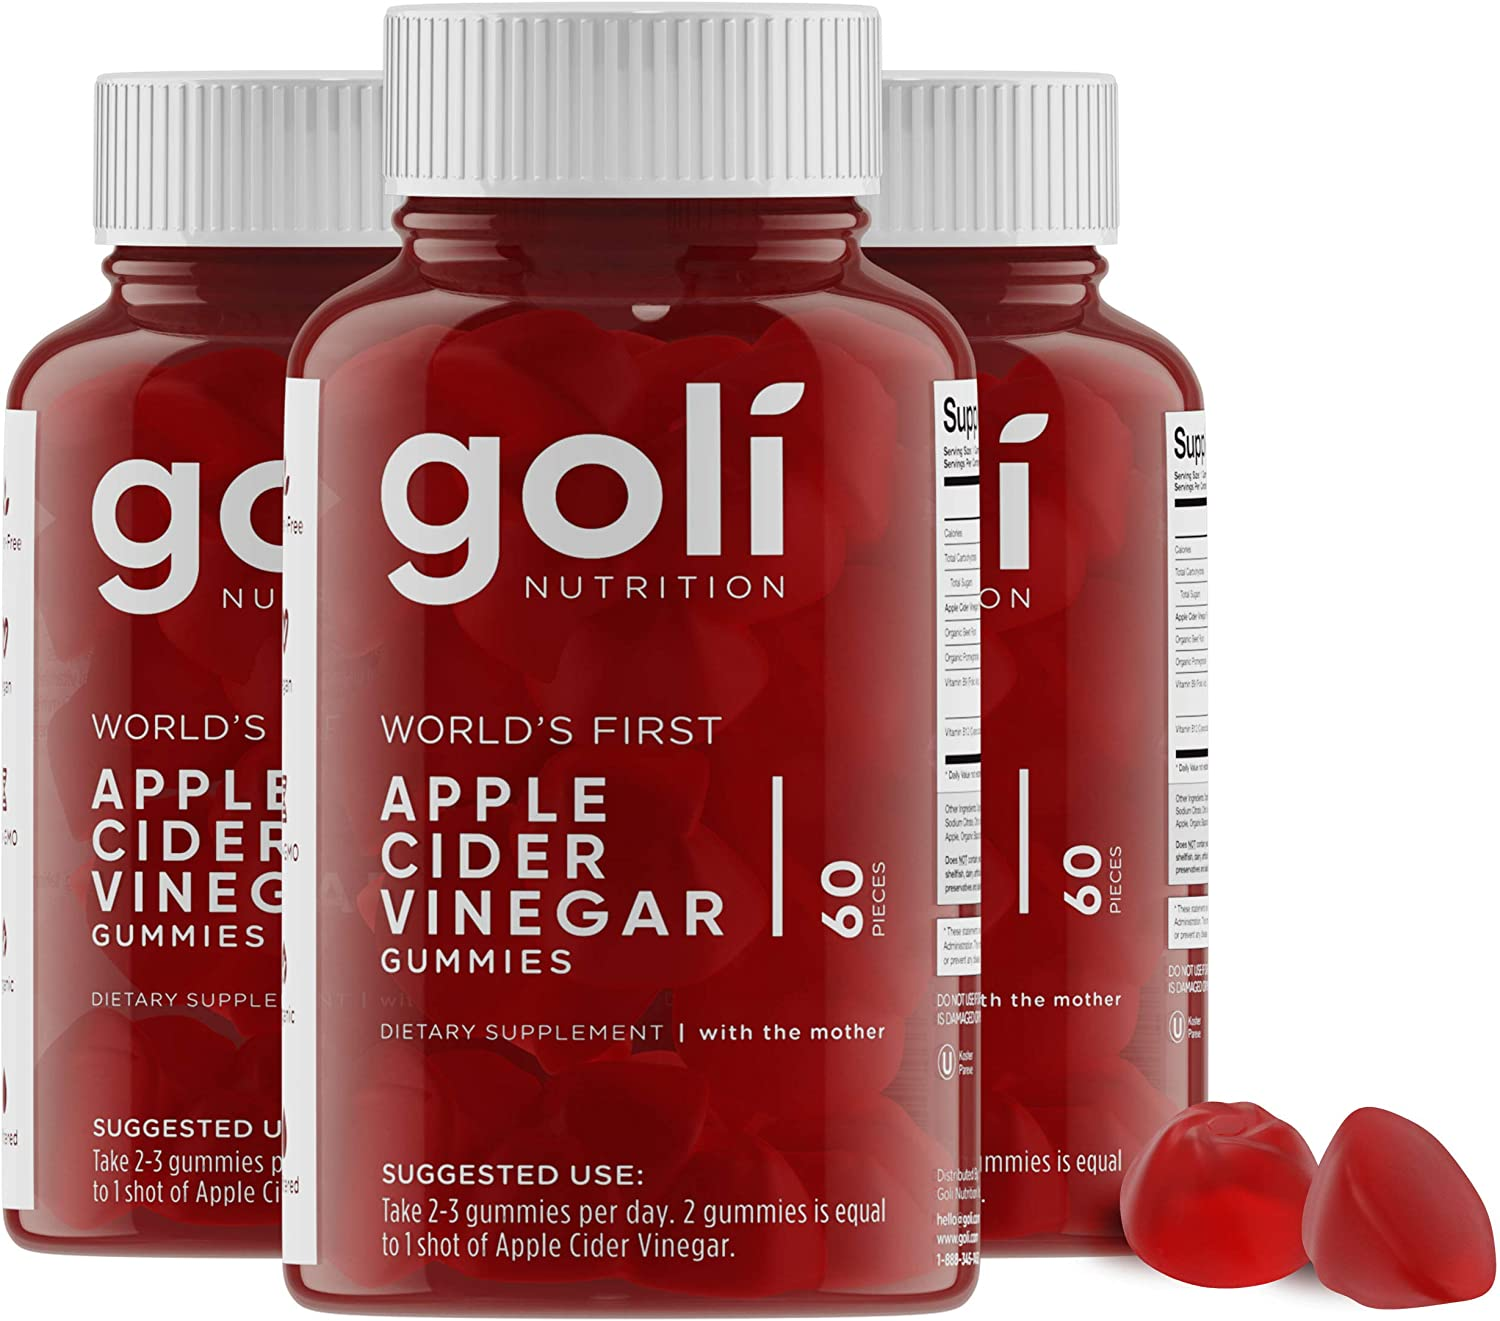 Amazon Com World S First Apple Cider Vinegar Gummy Vitamins By Goli Nutrition Immunity Detox Weight 3 Pack 180 Count With The Mother Gluten Free Vegan Vitamin B9 B12 Beetroot Pomegranate Health